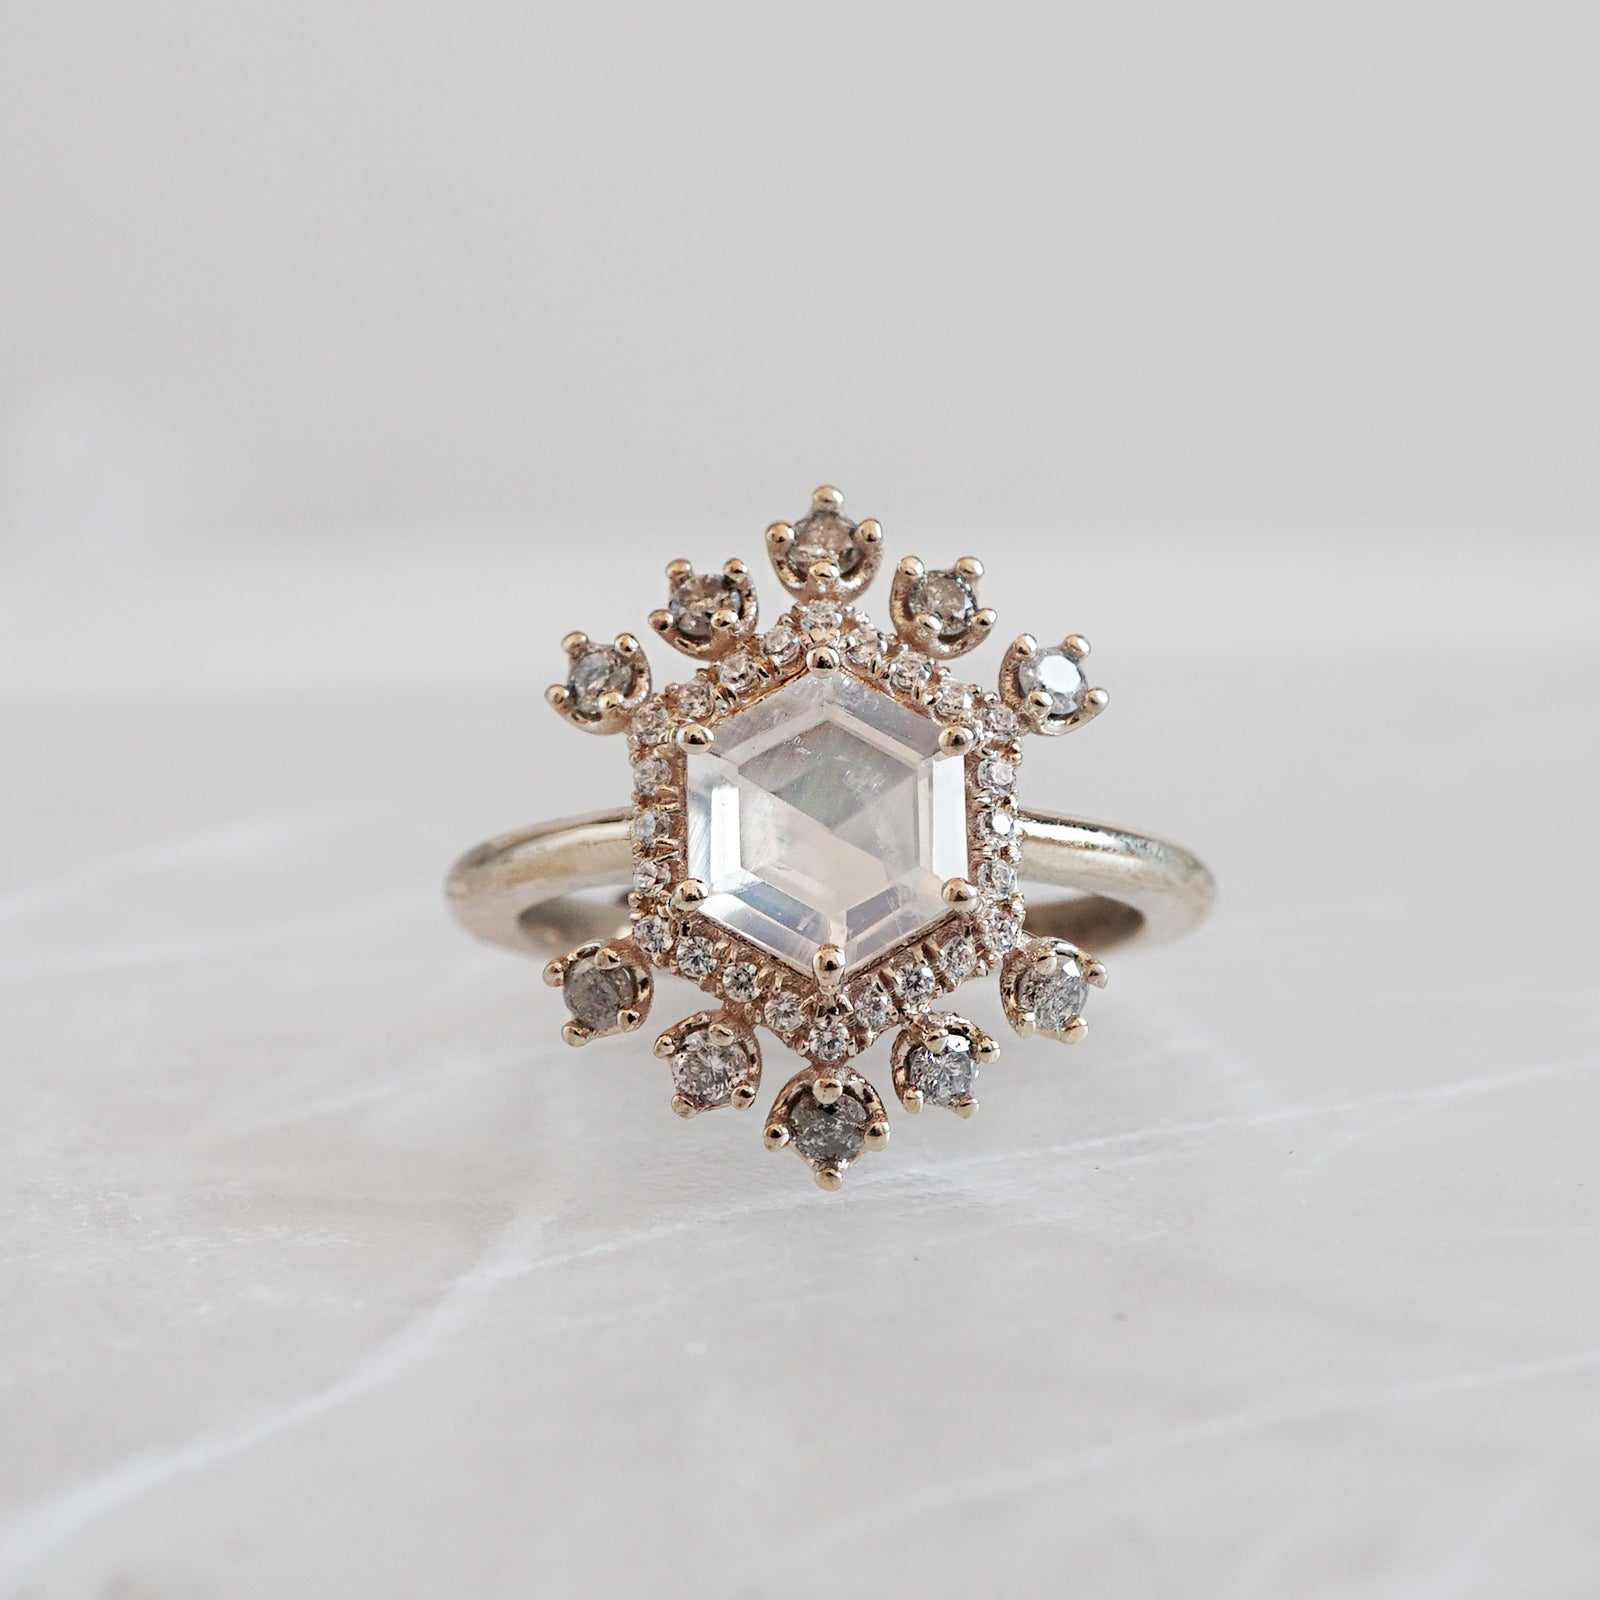 Cinderella Moonstone Diamond Ring - Tippy Taste Jewelry